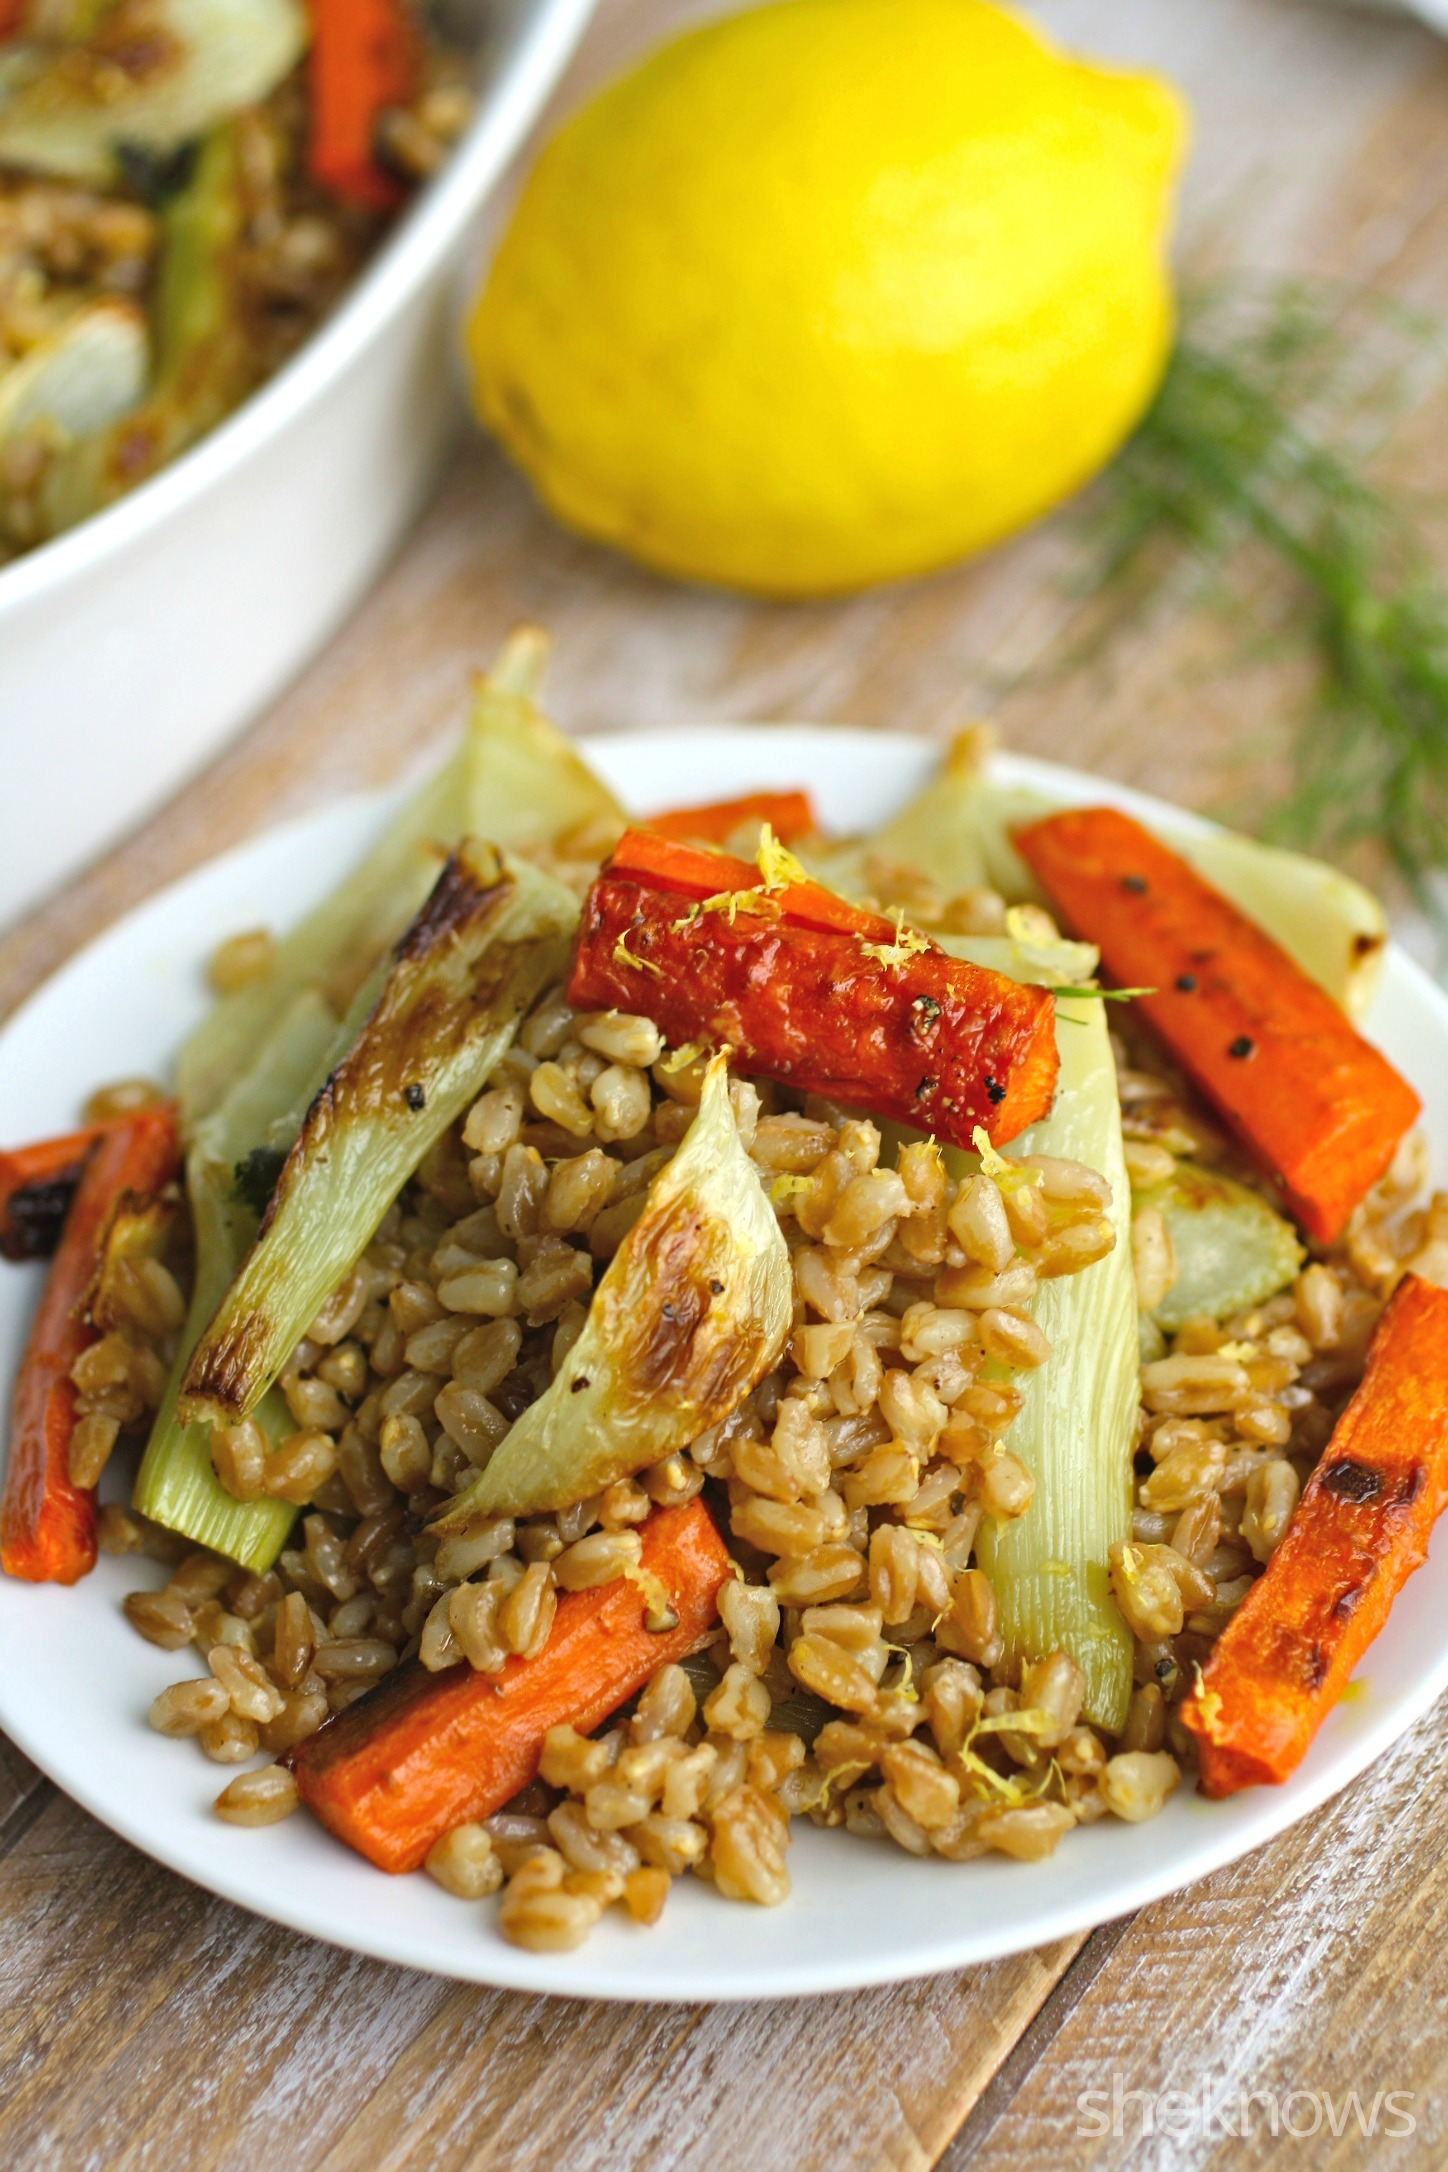 Serve this vegan dish: warm farro salad with roasted carrots and fennel